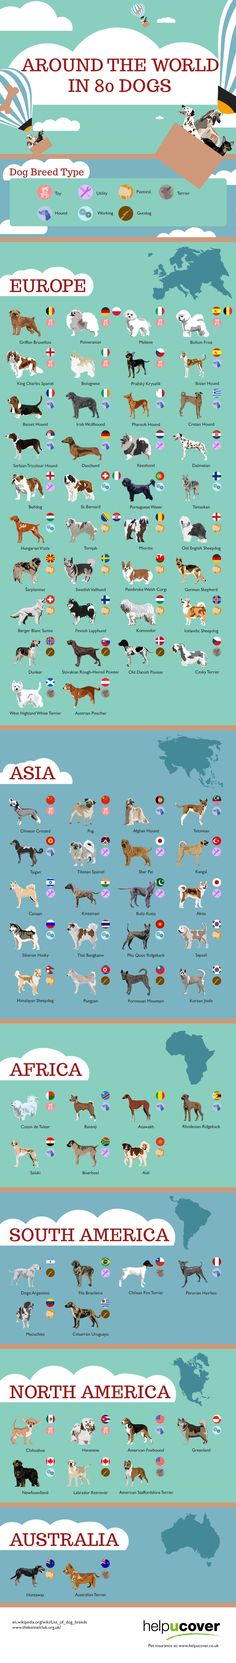 Around the World in 80 Dogs #Dogs #Pets #infographic